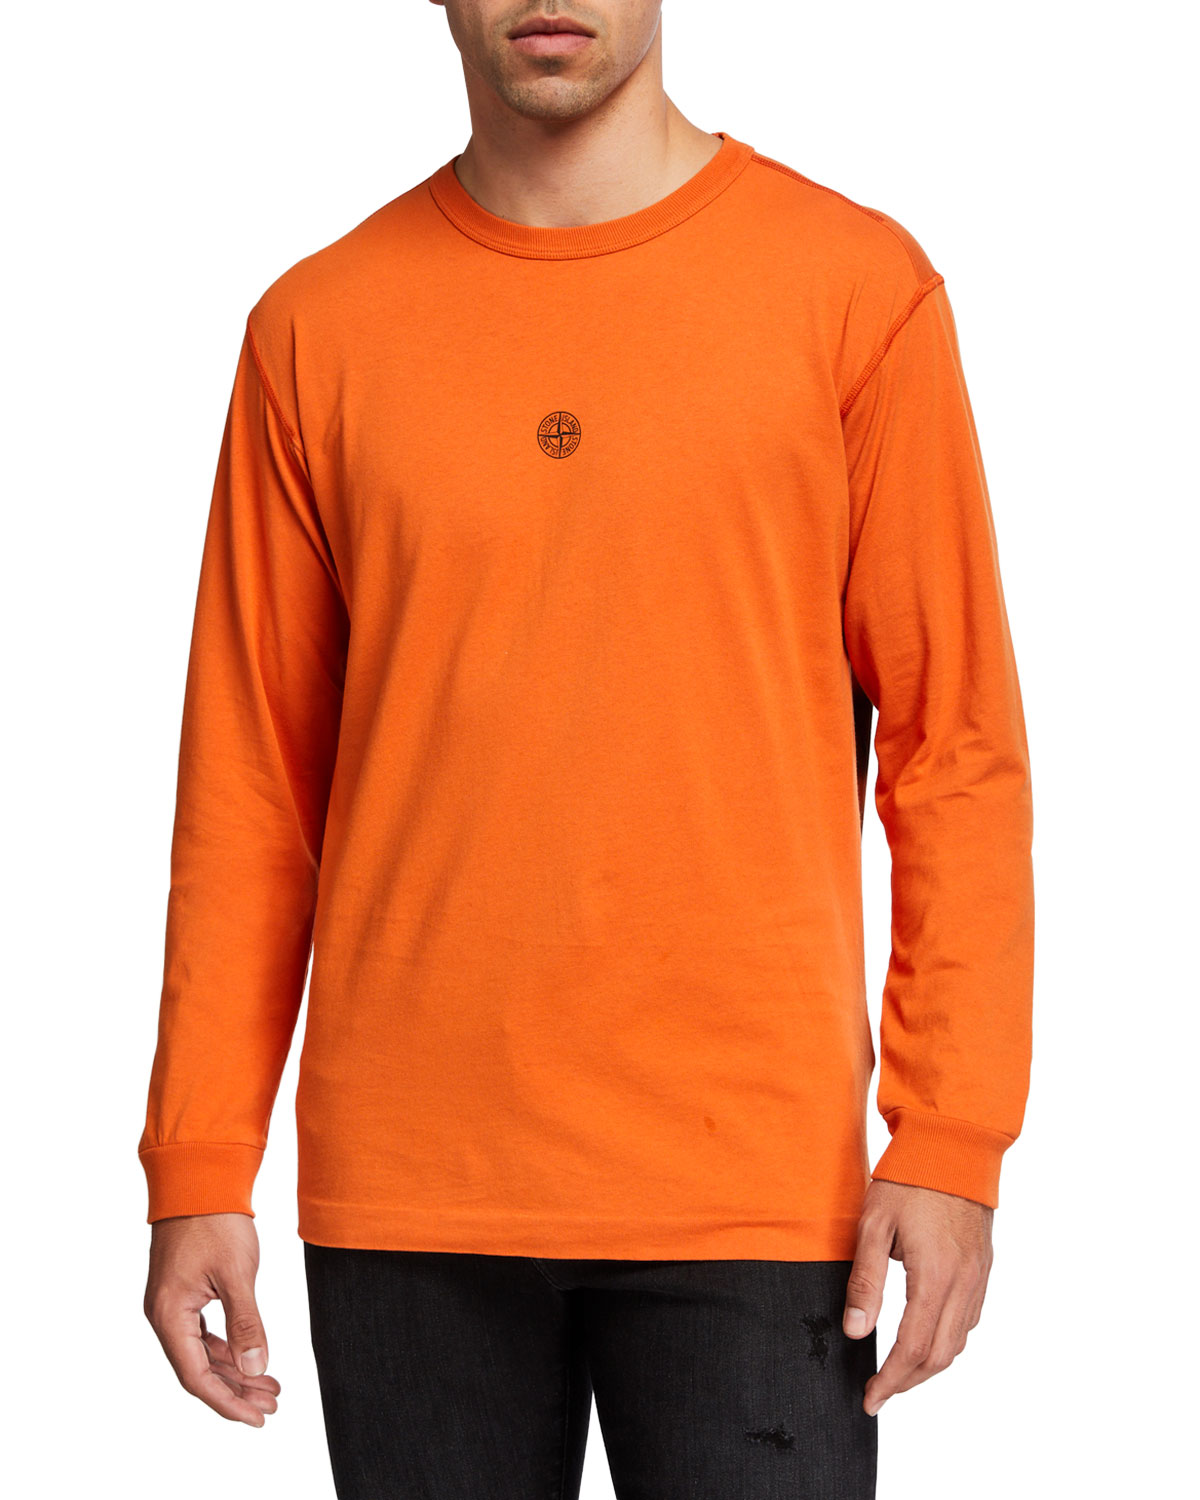 Stone Island T-shirts MEN'S SOLID CREWNECK LONG-SLEEVE T-SHIRT W/ LOGO PATCH